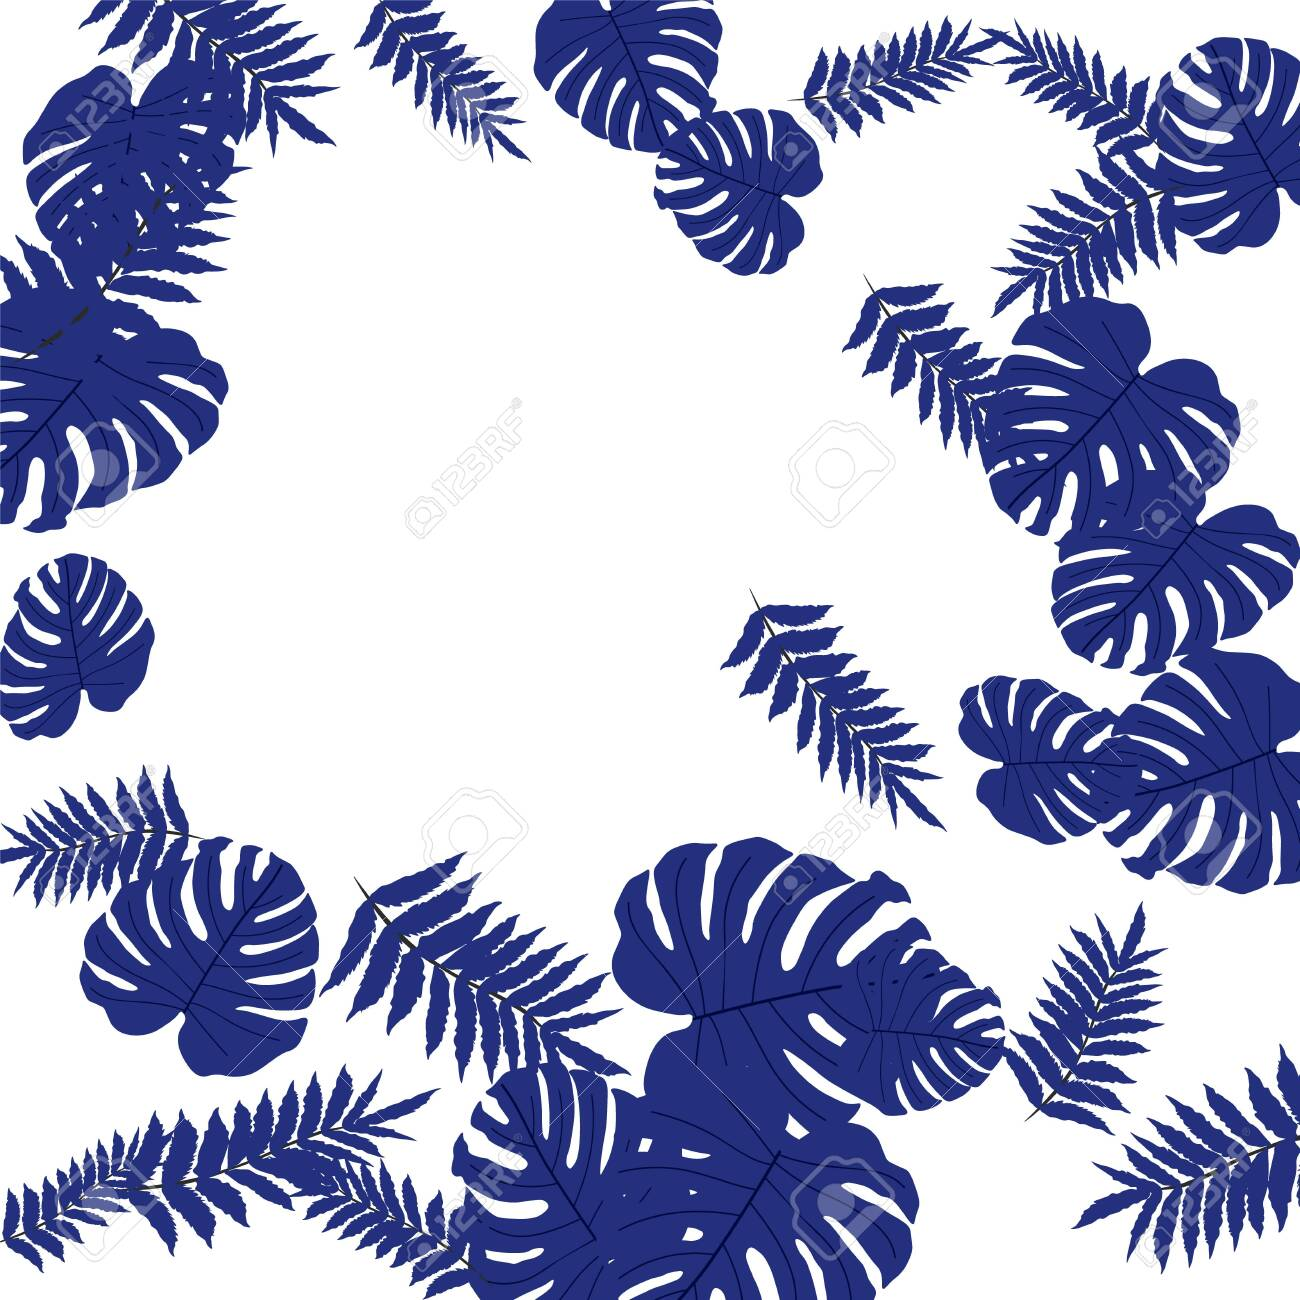 Vector tropical pattern, bright tropical foliage, monstera leaves. Modern bright summer print design of thickets of tropical leaves from the jungle. - 153199551